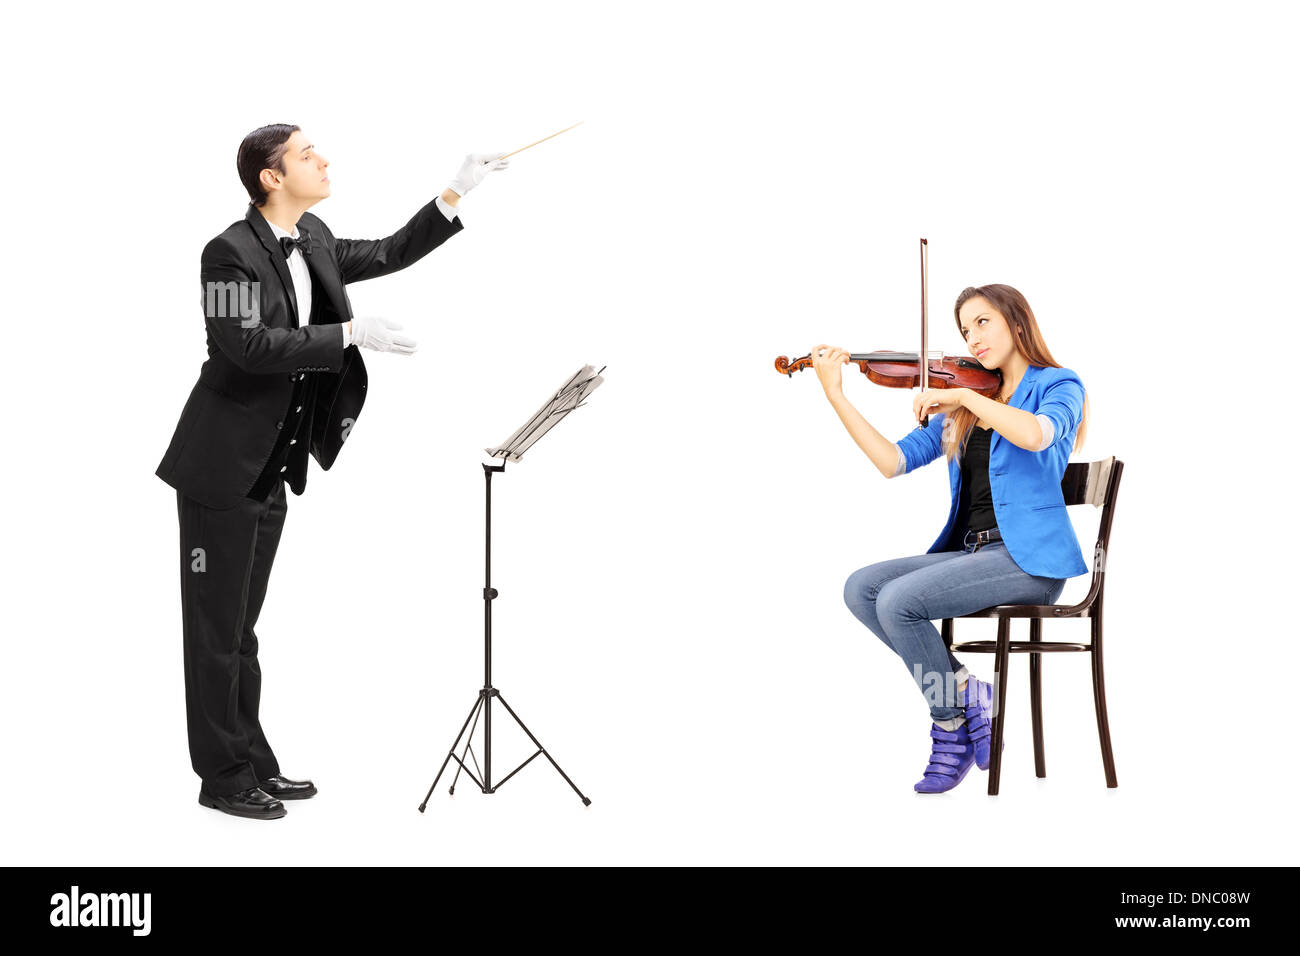 Male orchestra conductor directing a female playing violin - Stock Image